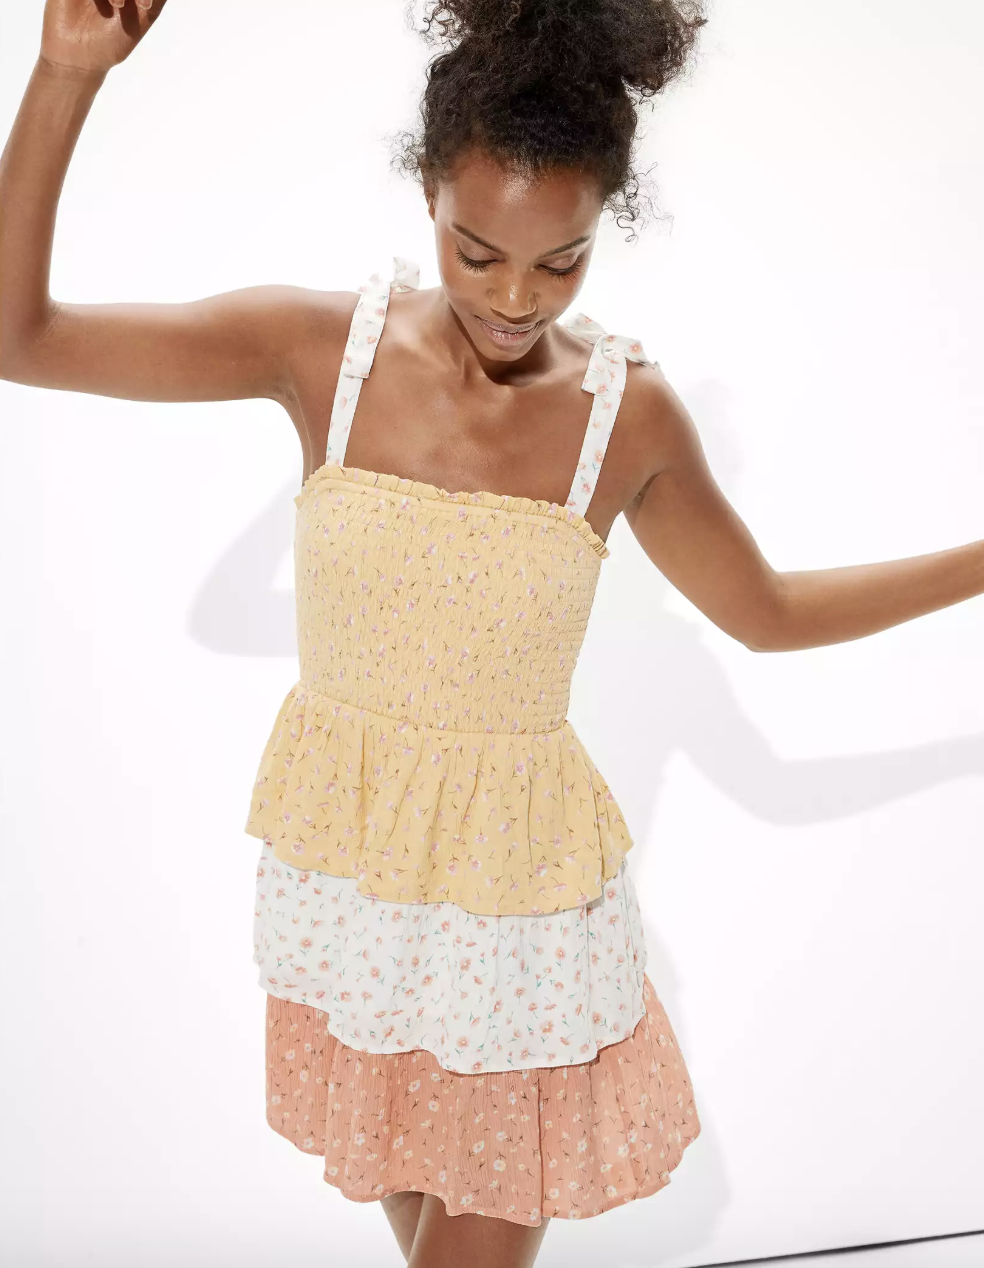 model wearing the tiered dress